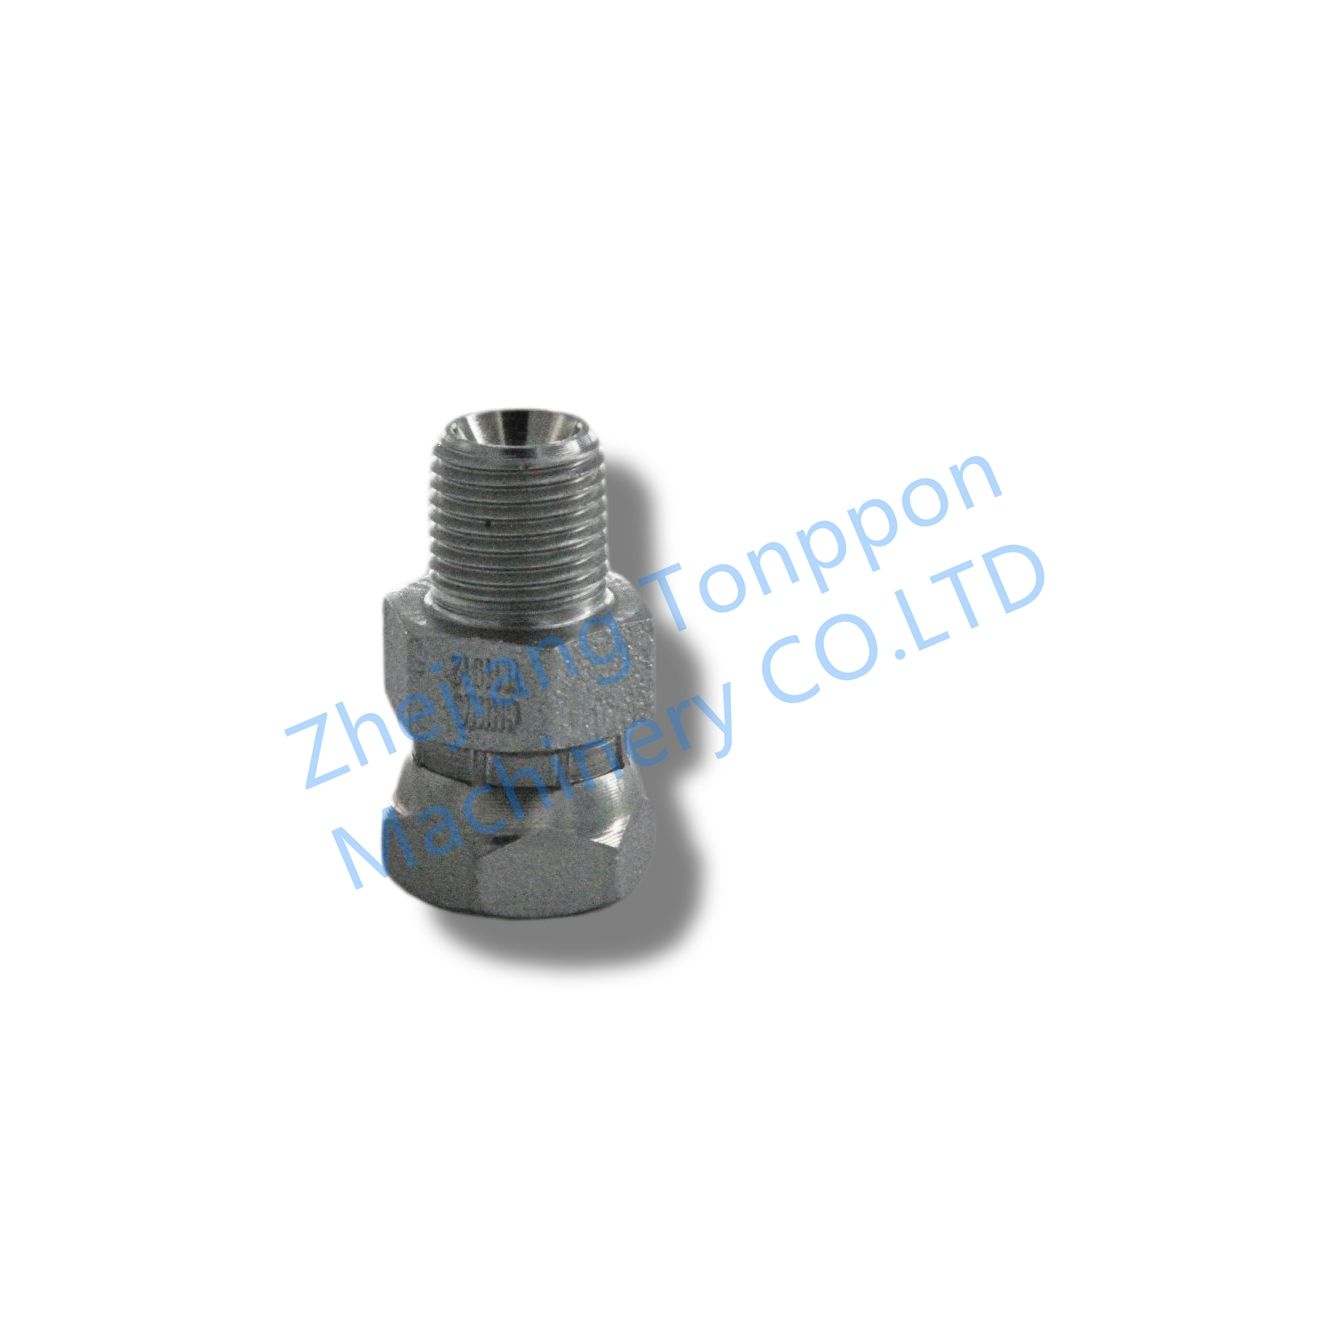 1404 Carbon Steel Hydraulic Connection